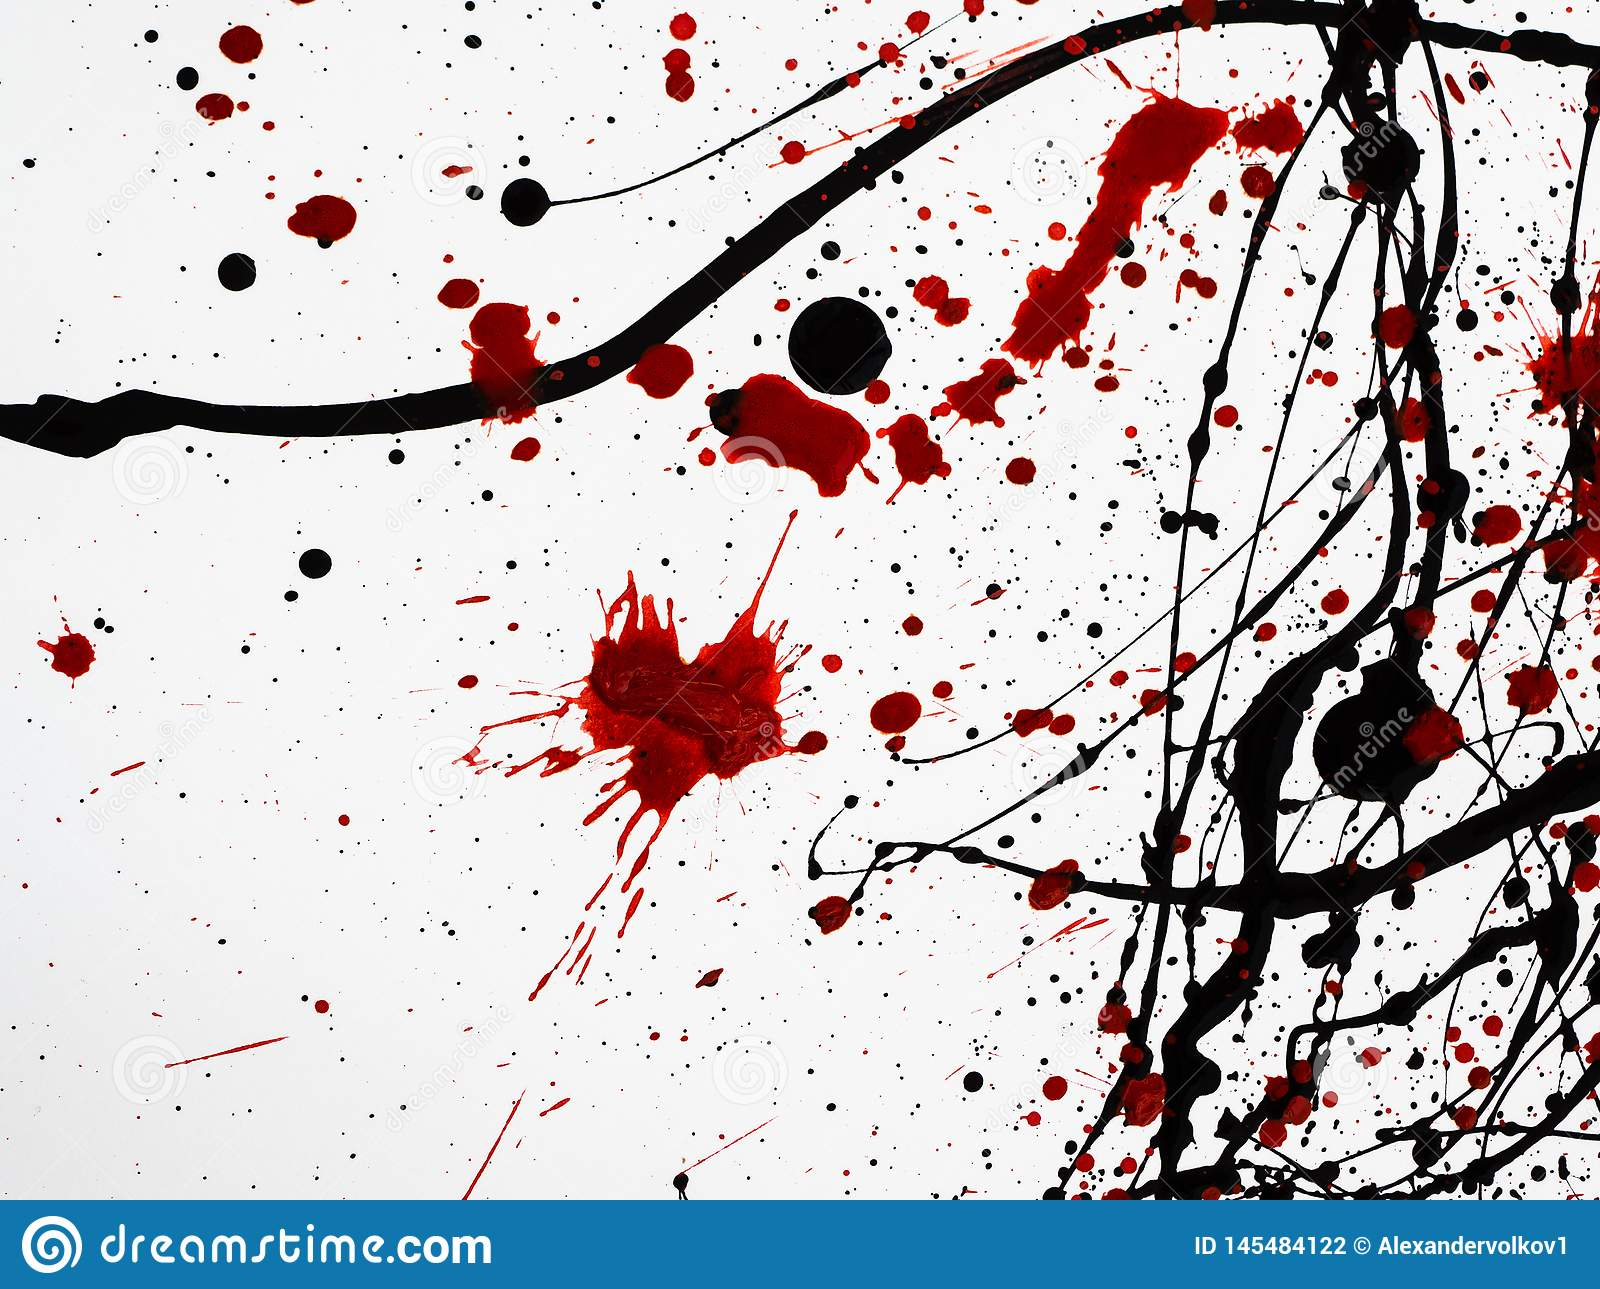 Dripping black red paint isolated on white background. similar to blood. Flowing fuel oil splashes, drops and trail